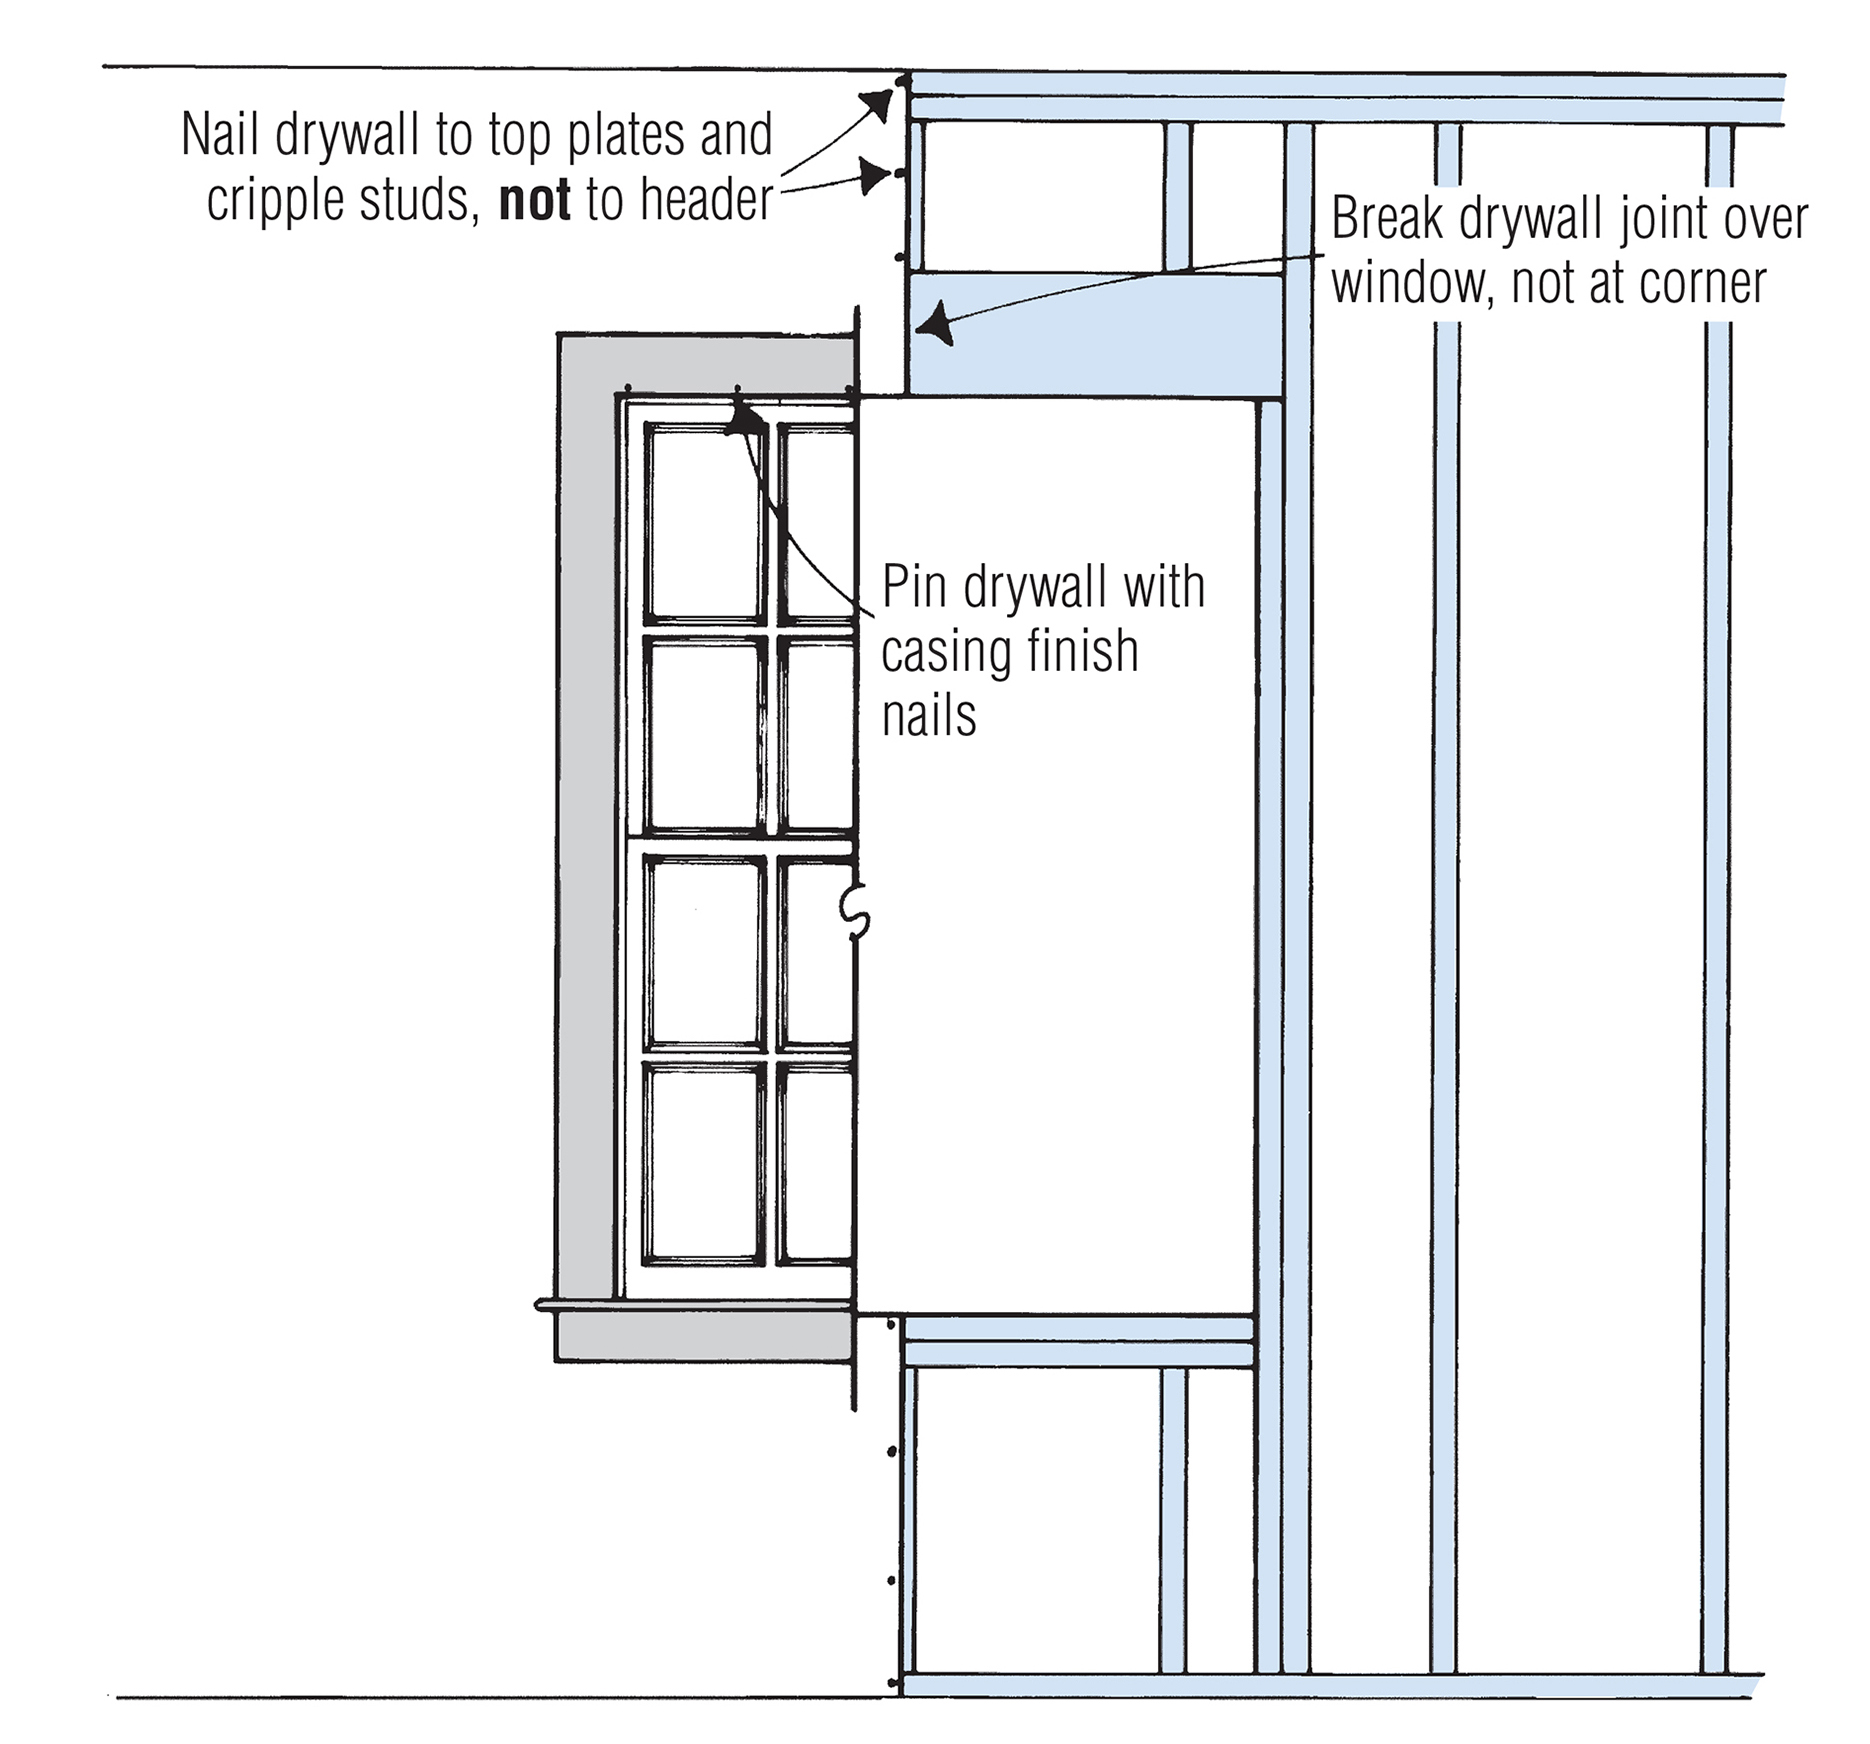 Installing Drywall Around Windows And Doors Jlc Online